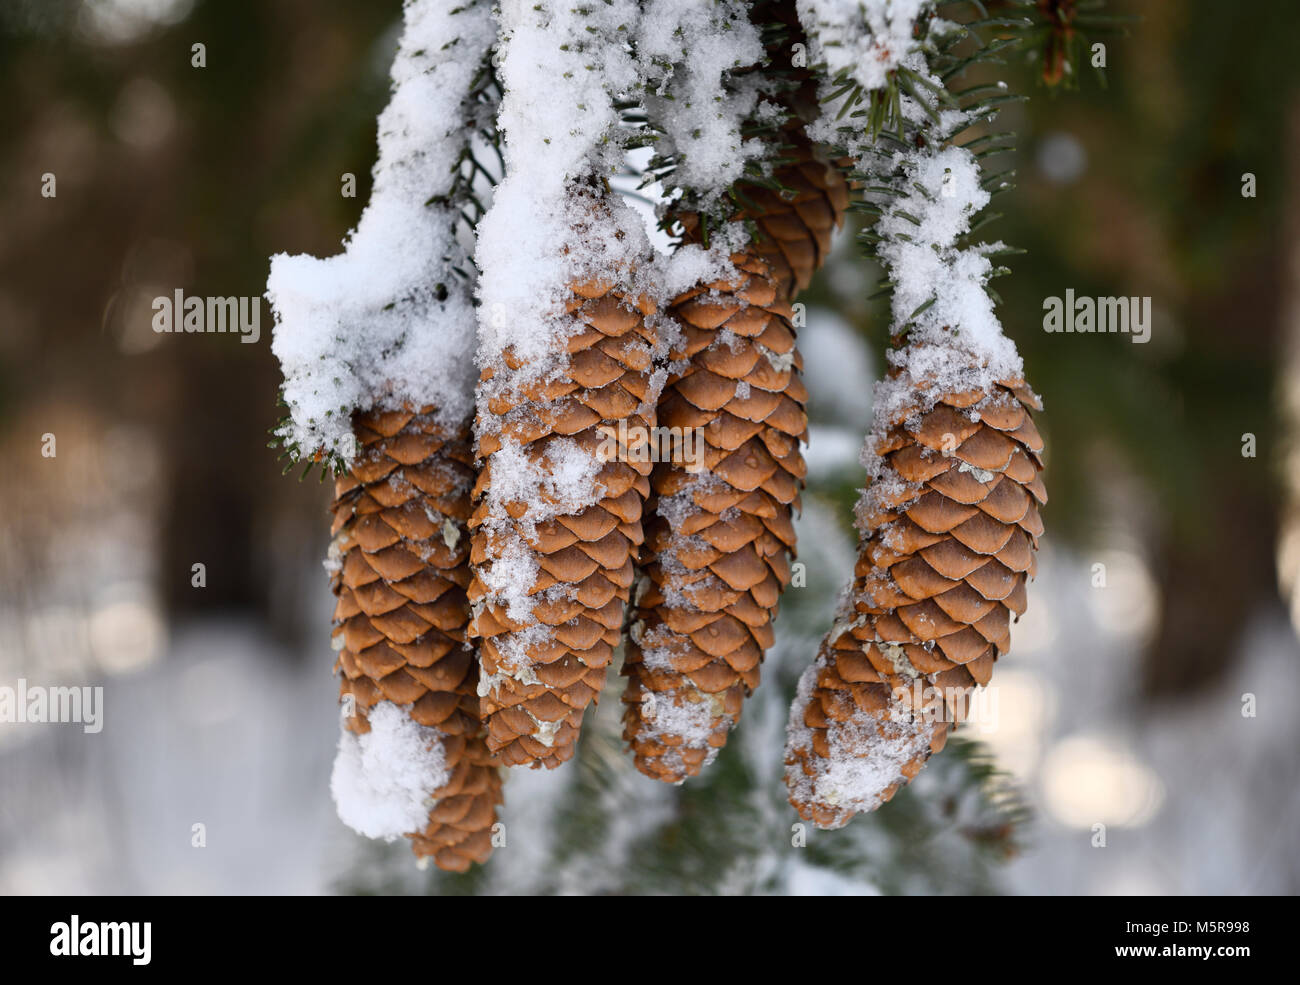 Norway Spruce tree cones covered in melting snow in winter forest Toronto Canada - Stock Image